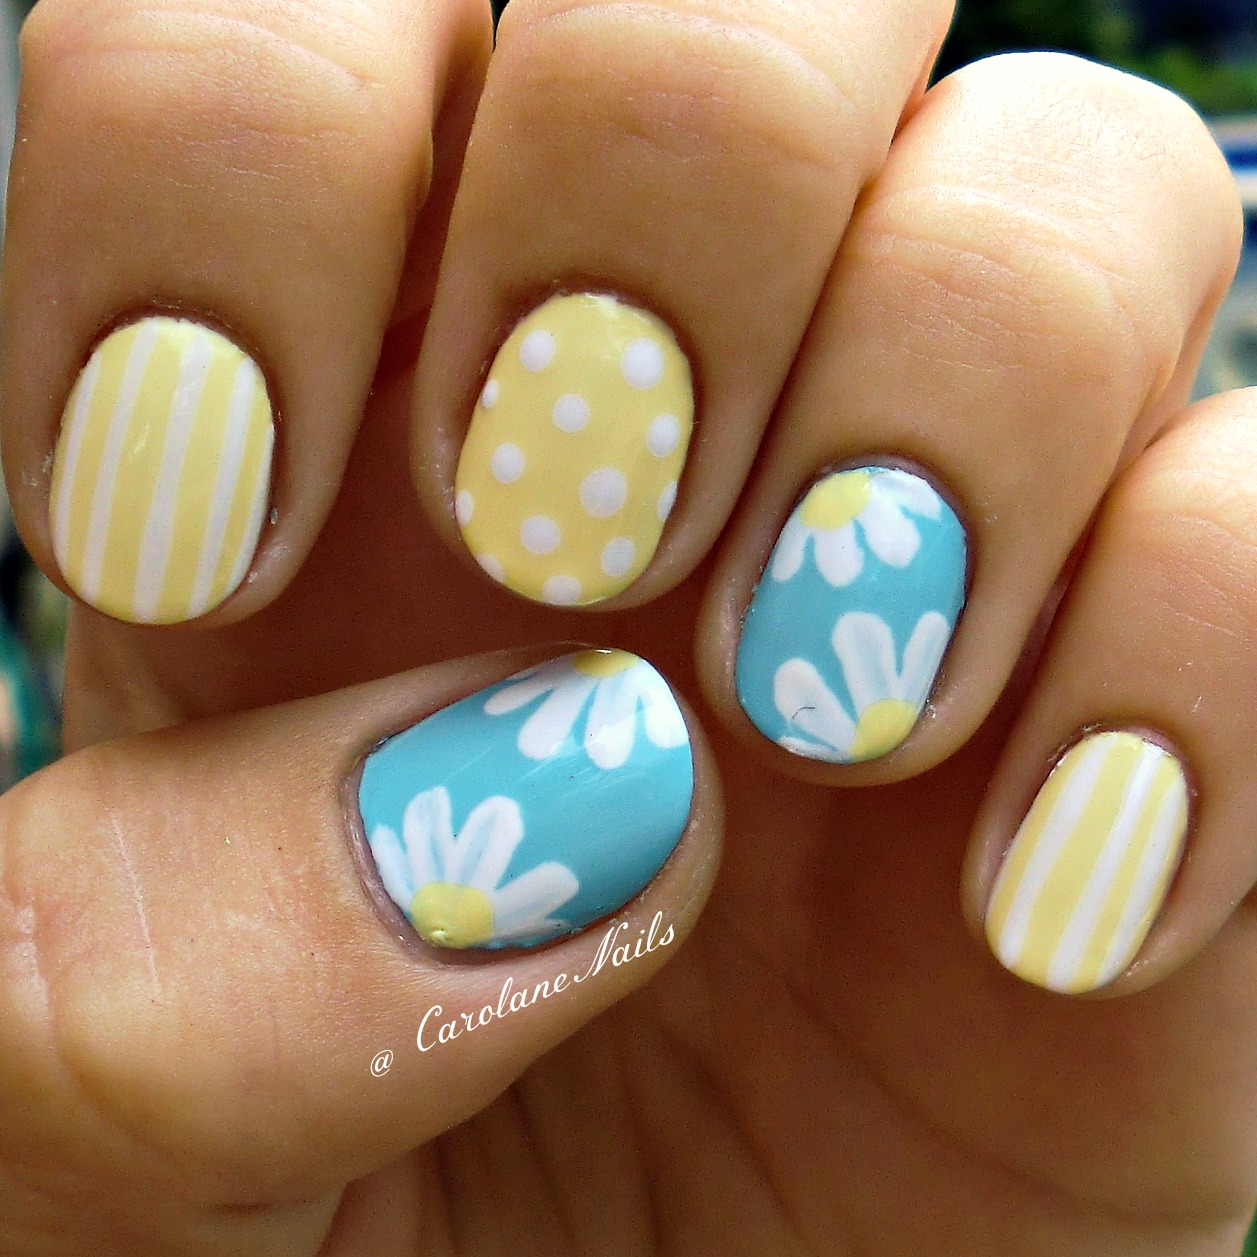 Adorable Nail Designs: Best 25+ Summer Acrylic Nails Ideas On Pinterest